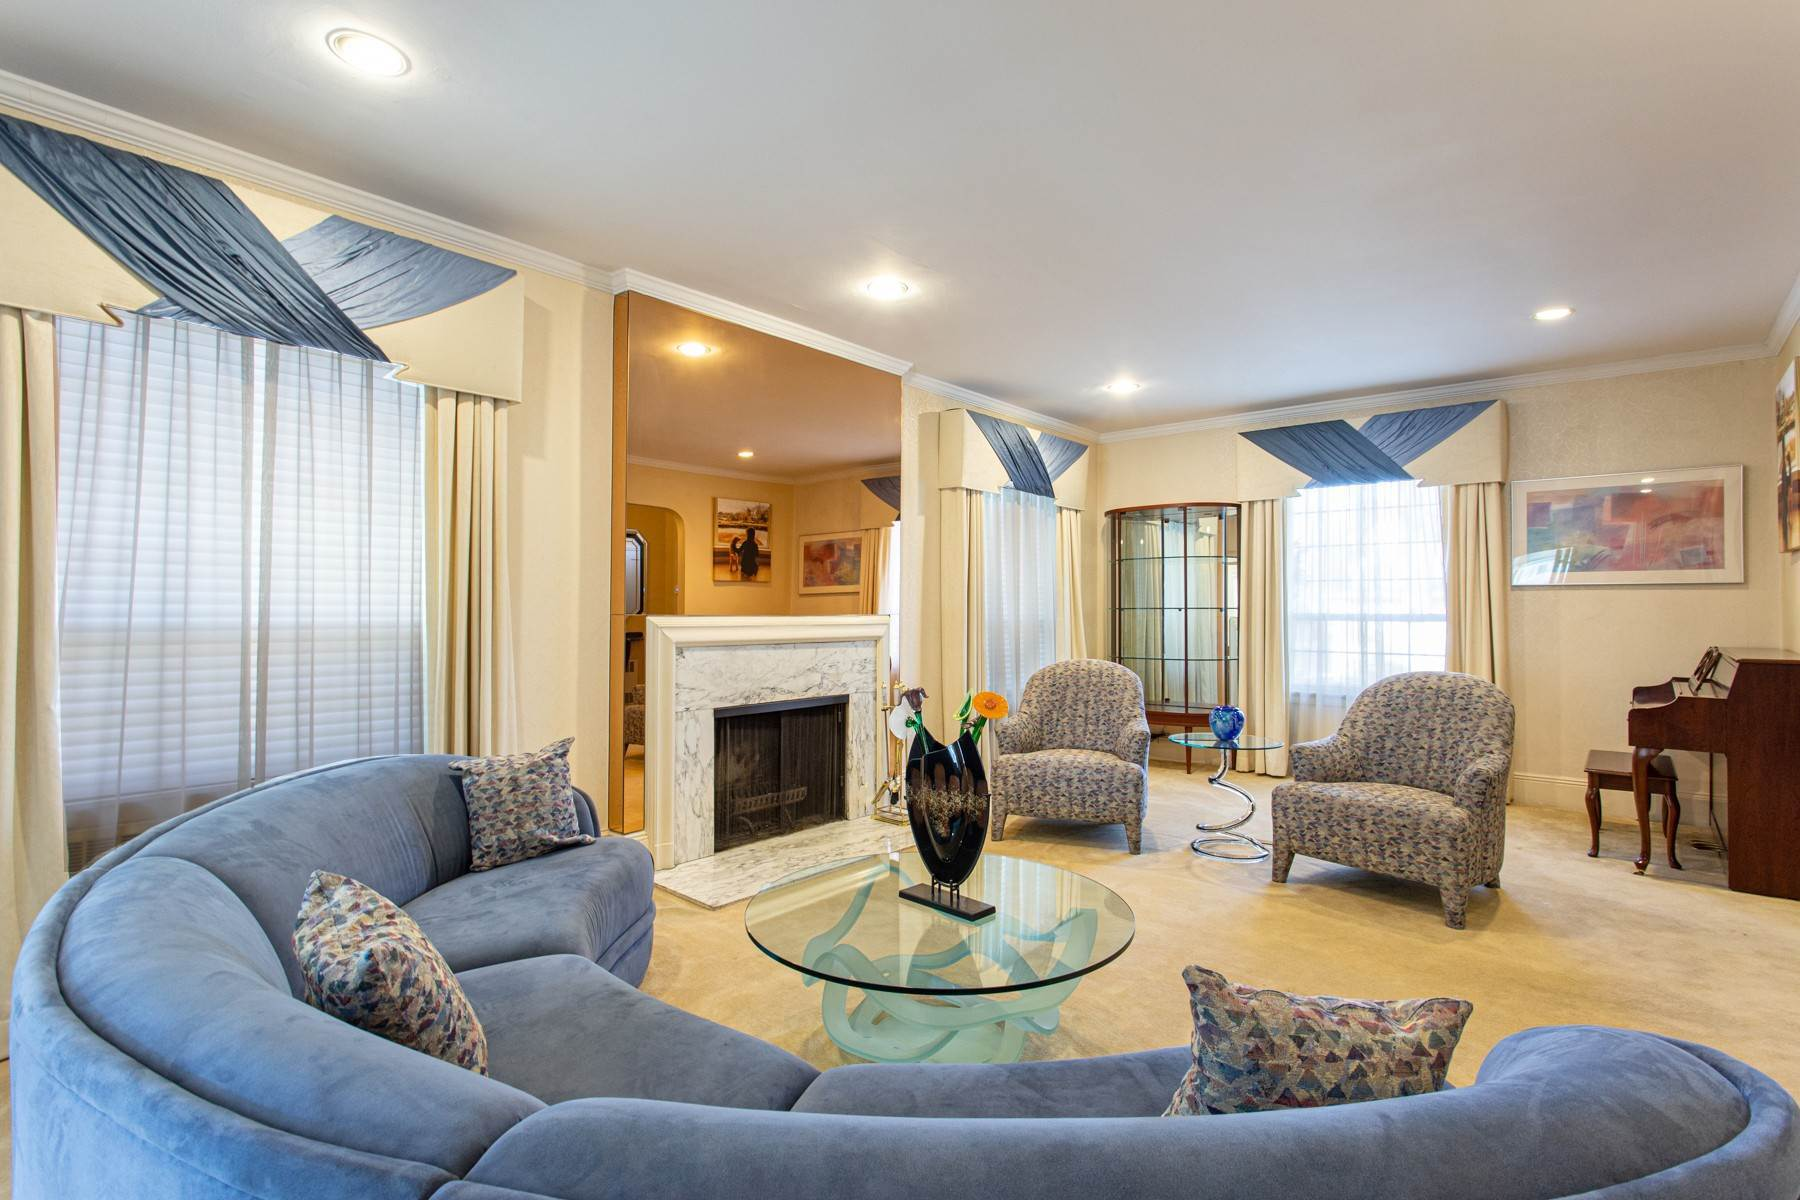 4. Single Family Homes for Sale at 'GRACIOUS LIVING IN KEW GARDENS' 103 Mowbray Drive, Kew Gardens, New York 11415 United States